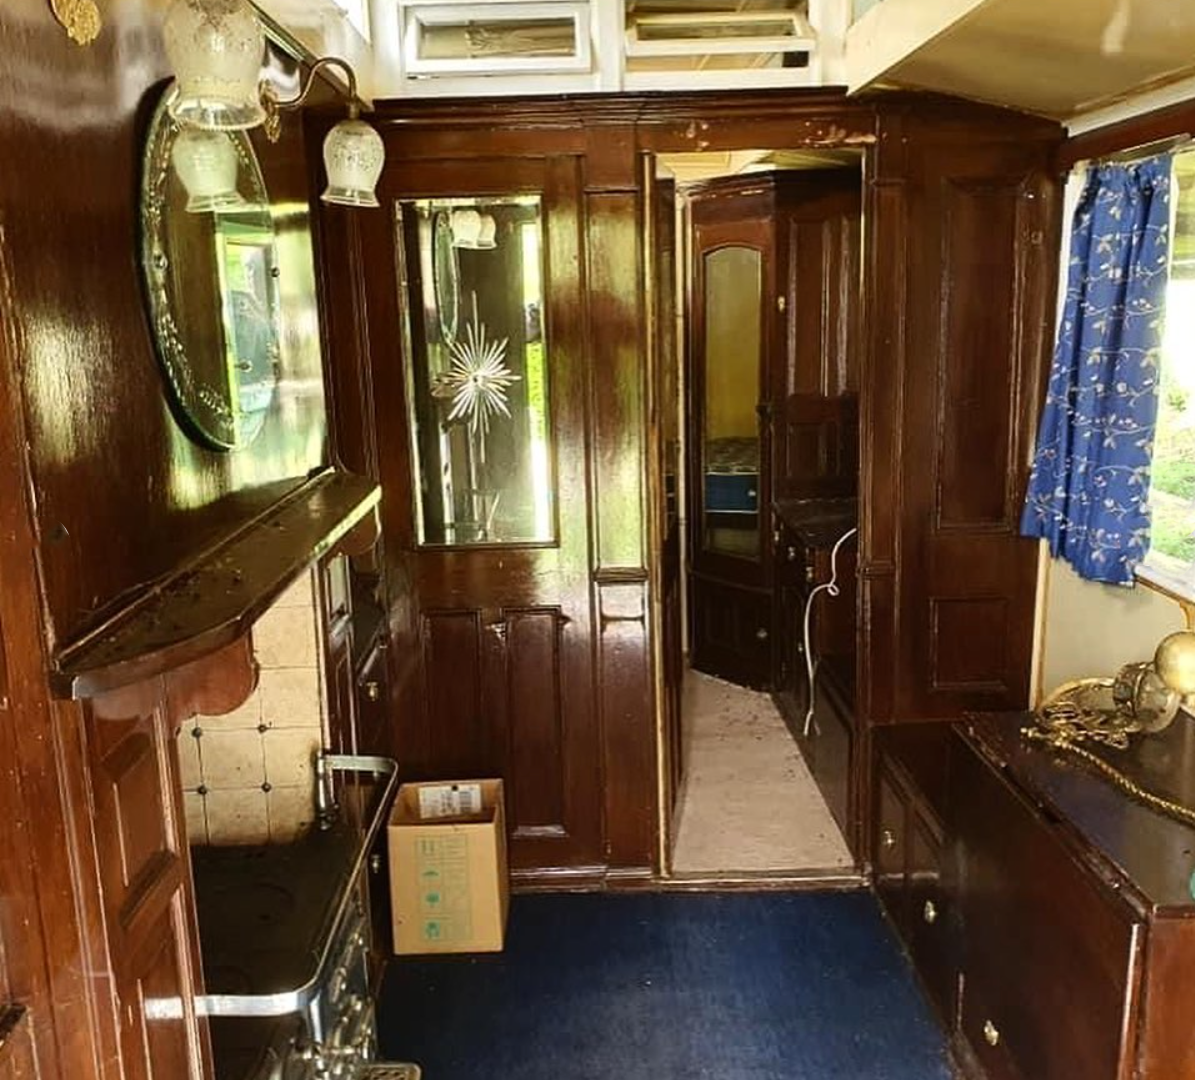 Interior of Wagon